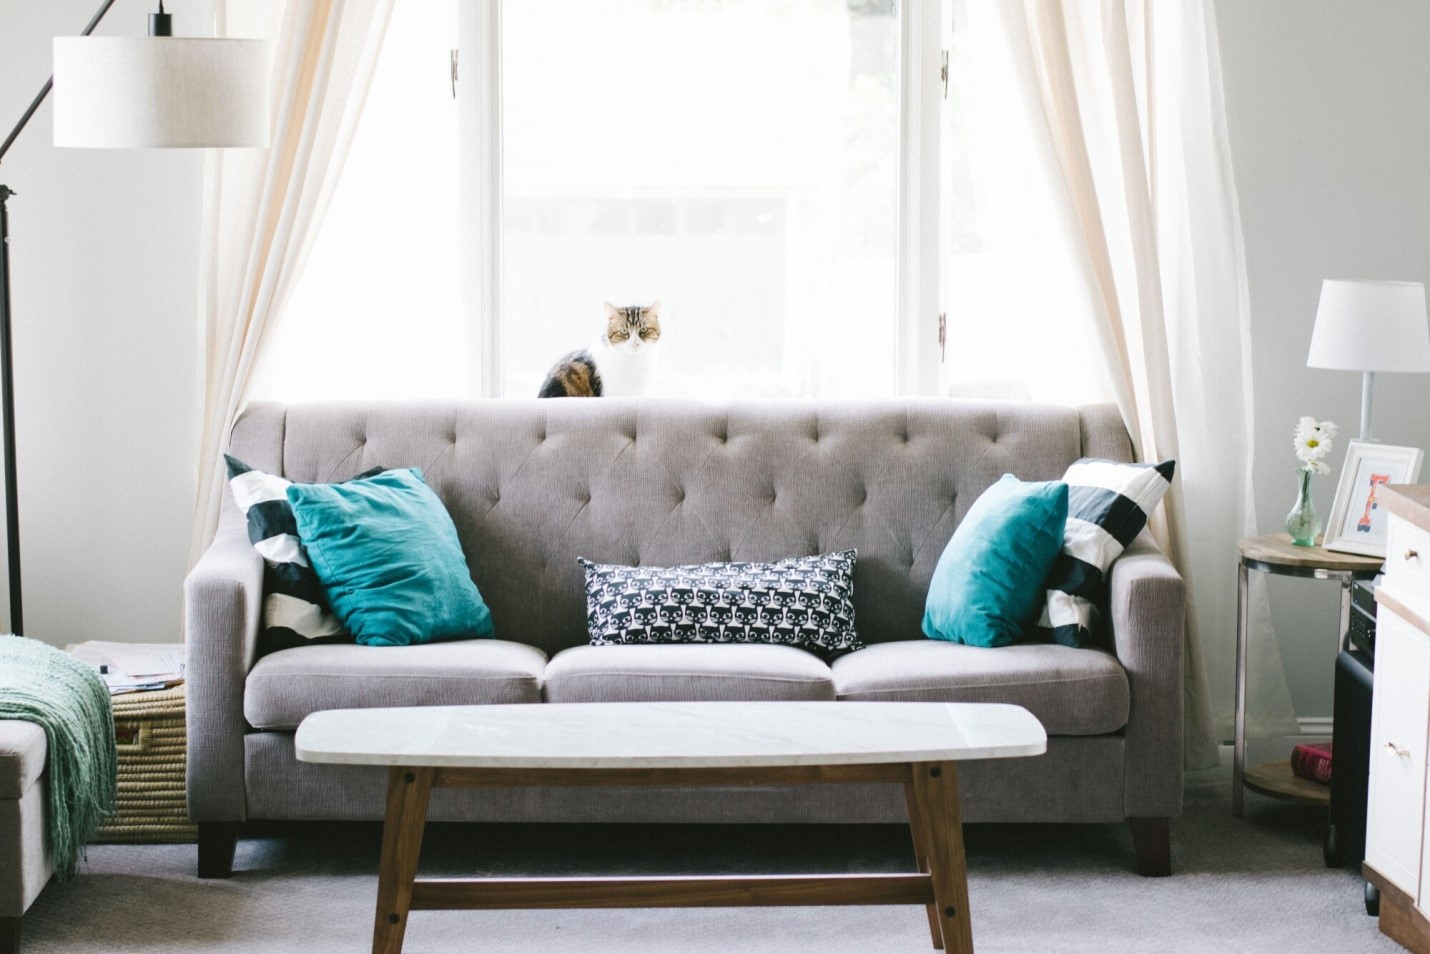 How to Choose the Best Couch For Your Living Room